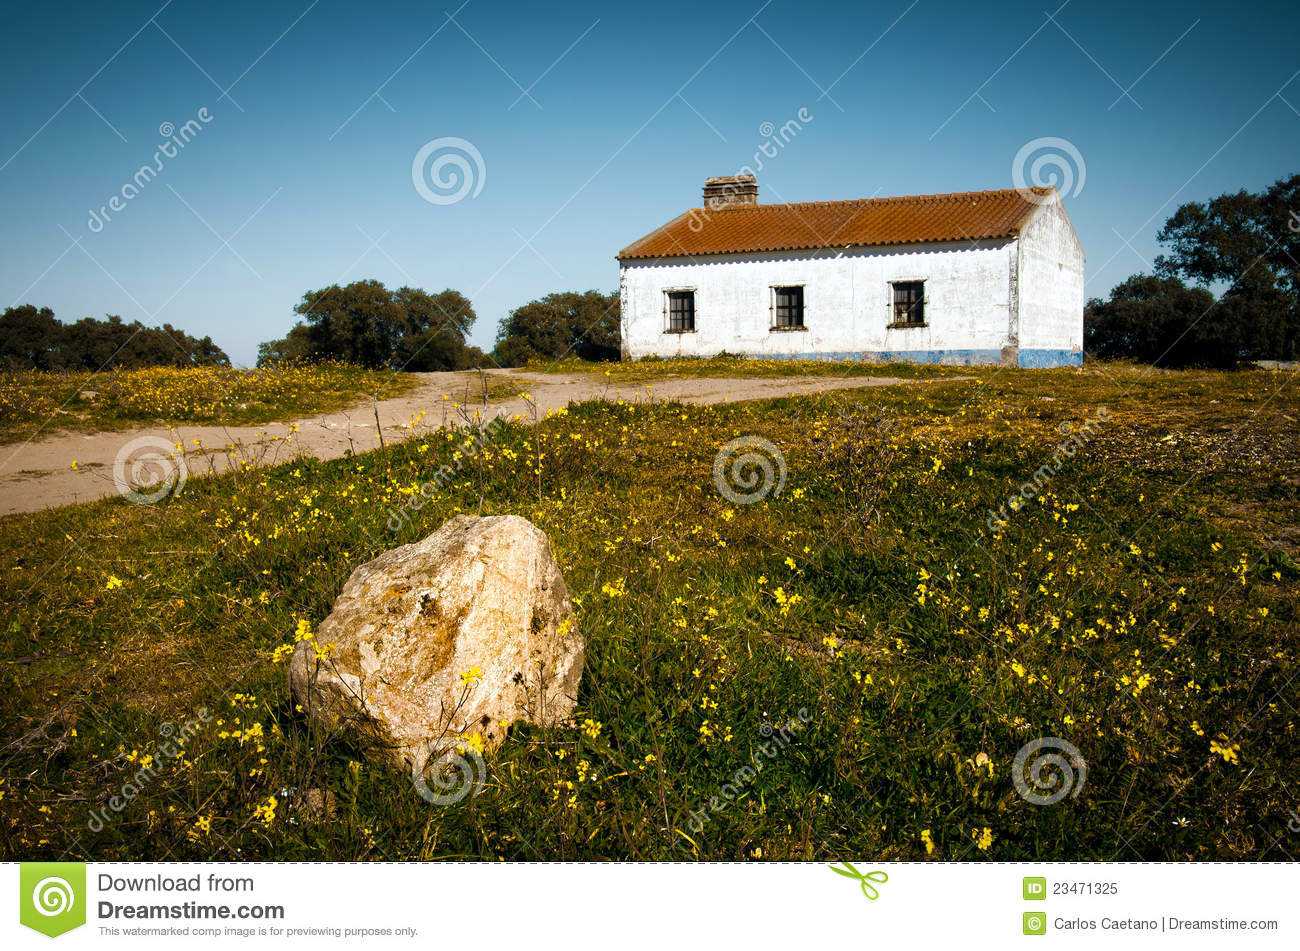 Country house royalty free stock photo image 23471325 for Country house online